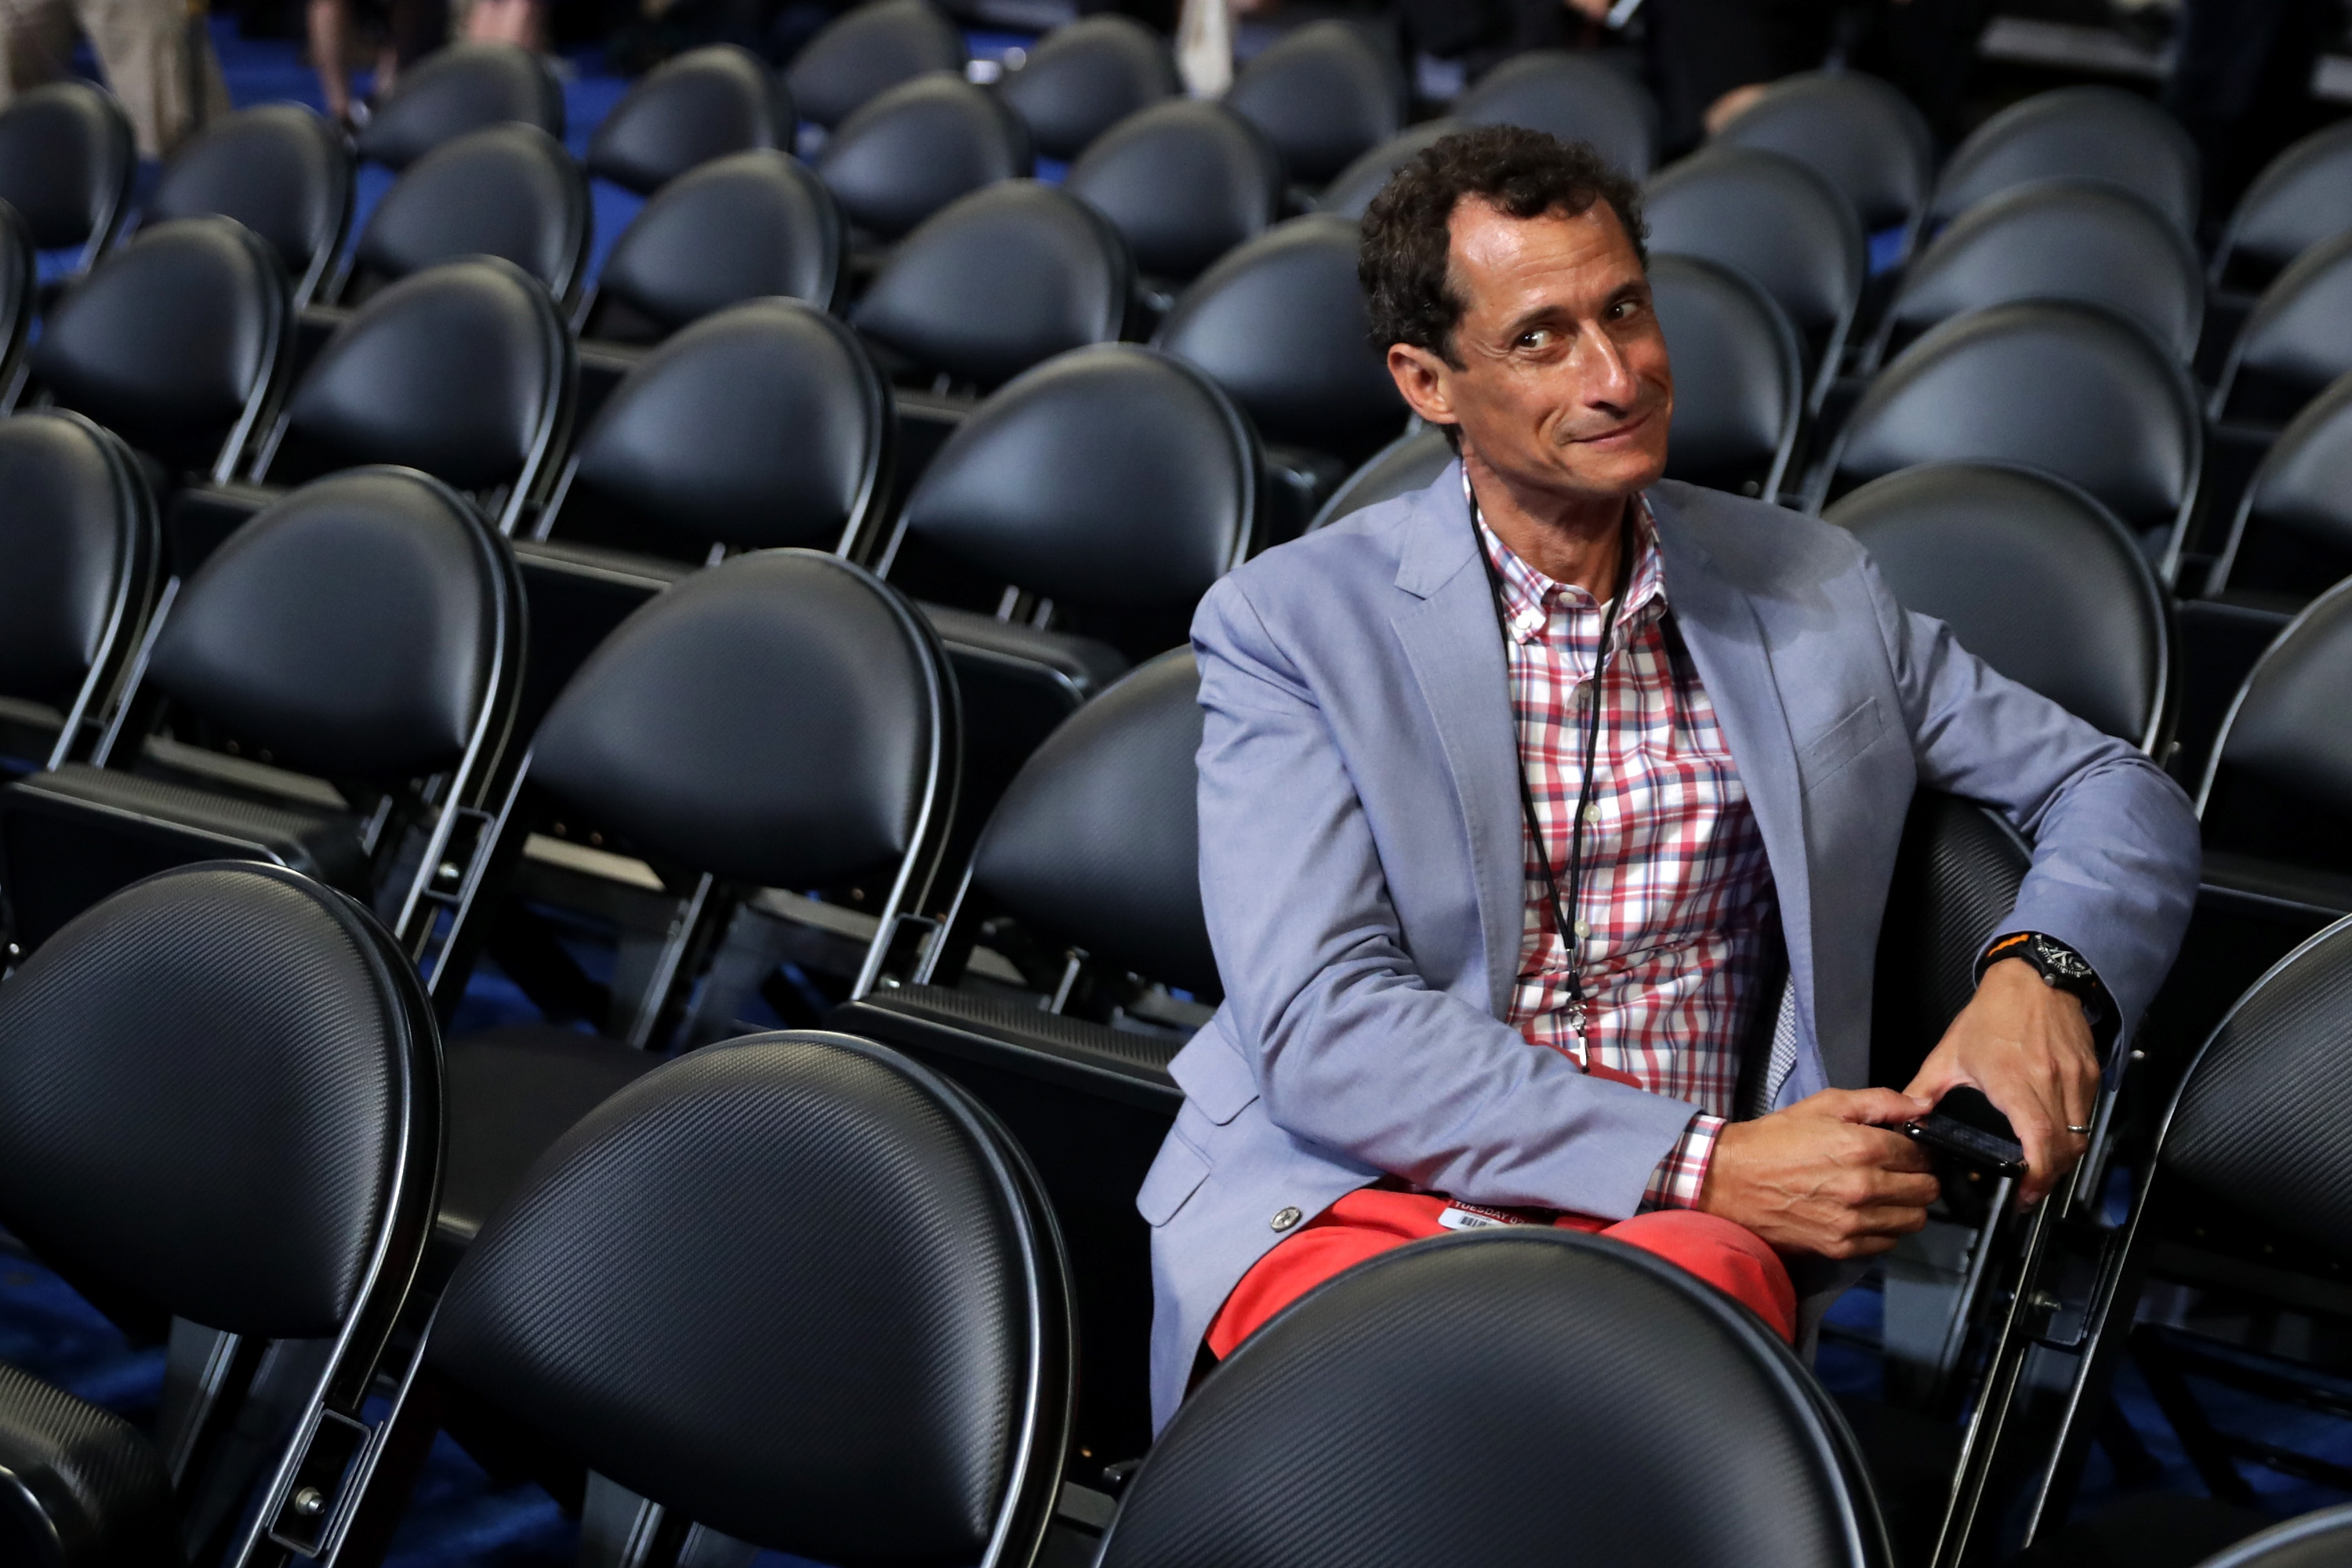 Anthony Weiner on July 26, 2016 in Philadelphia, PA.